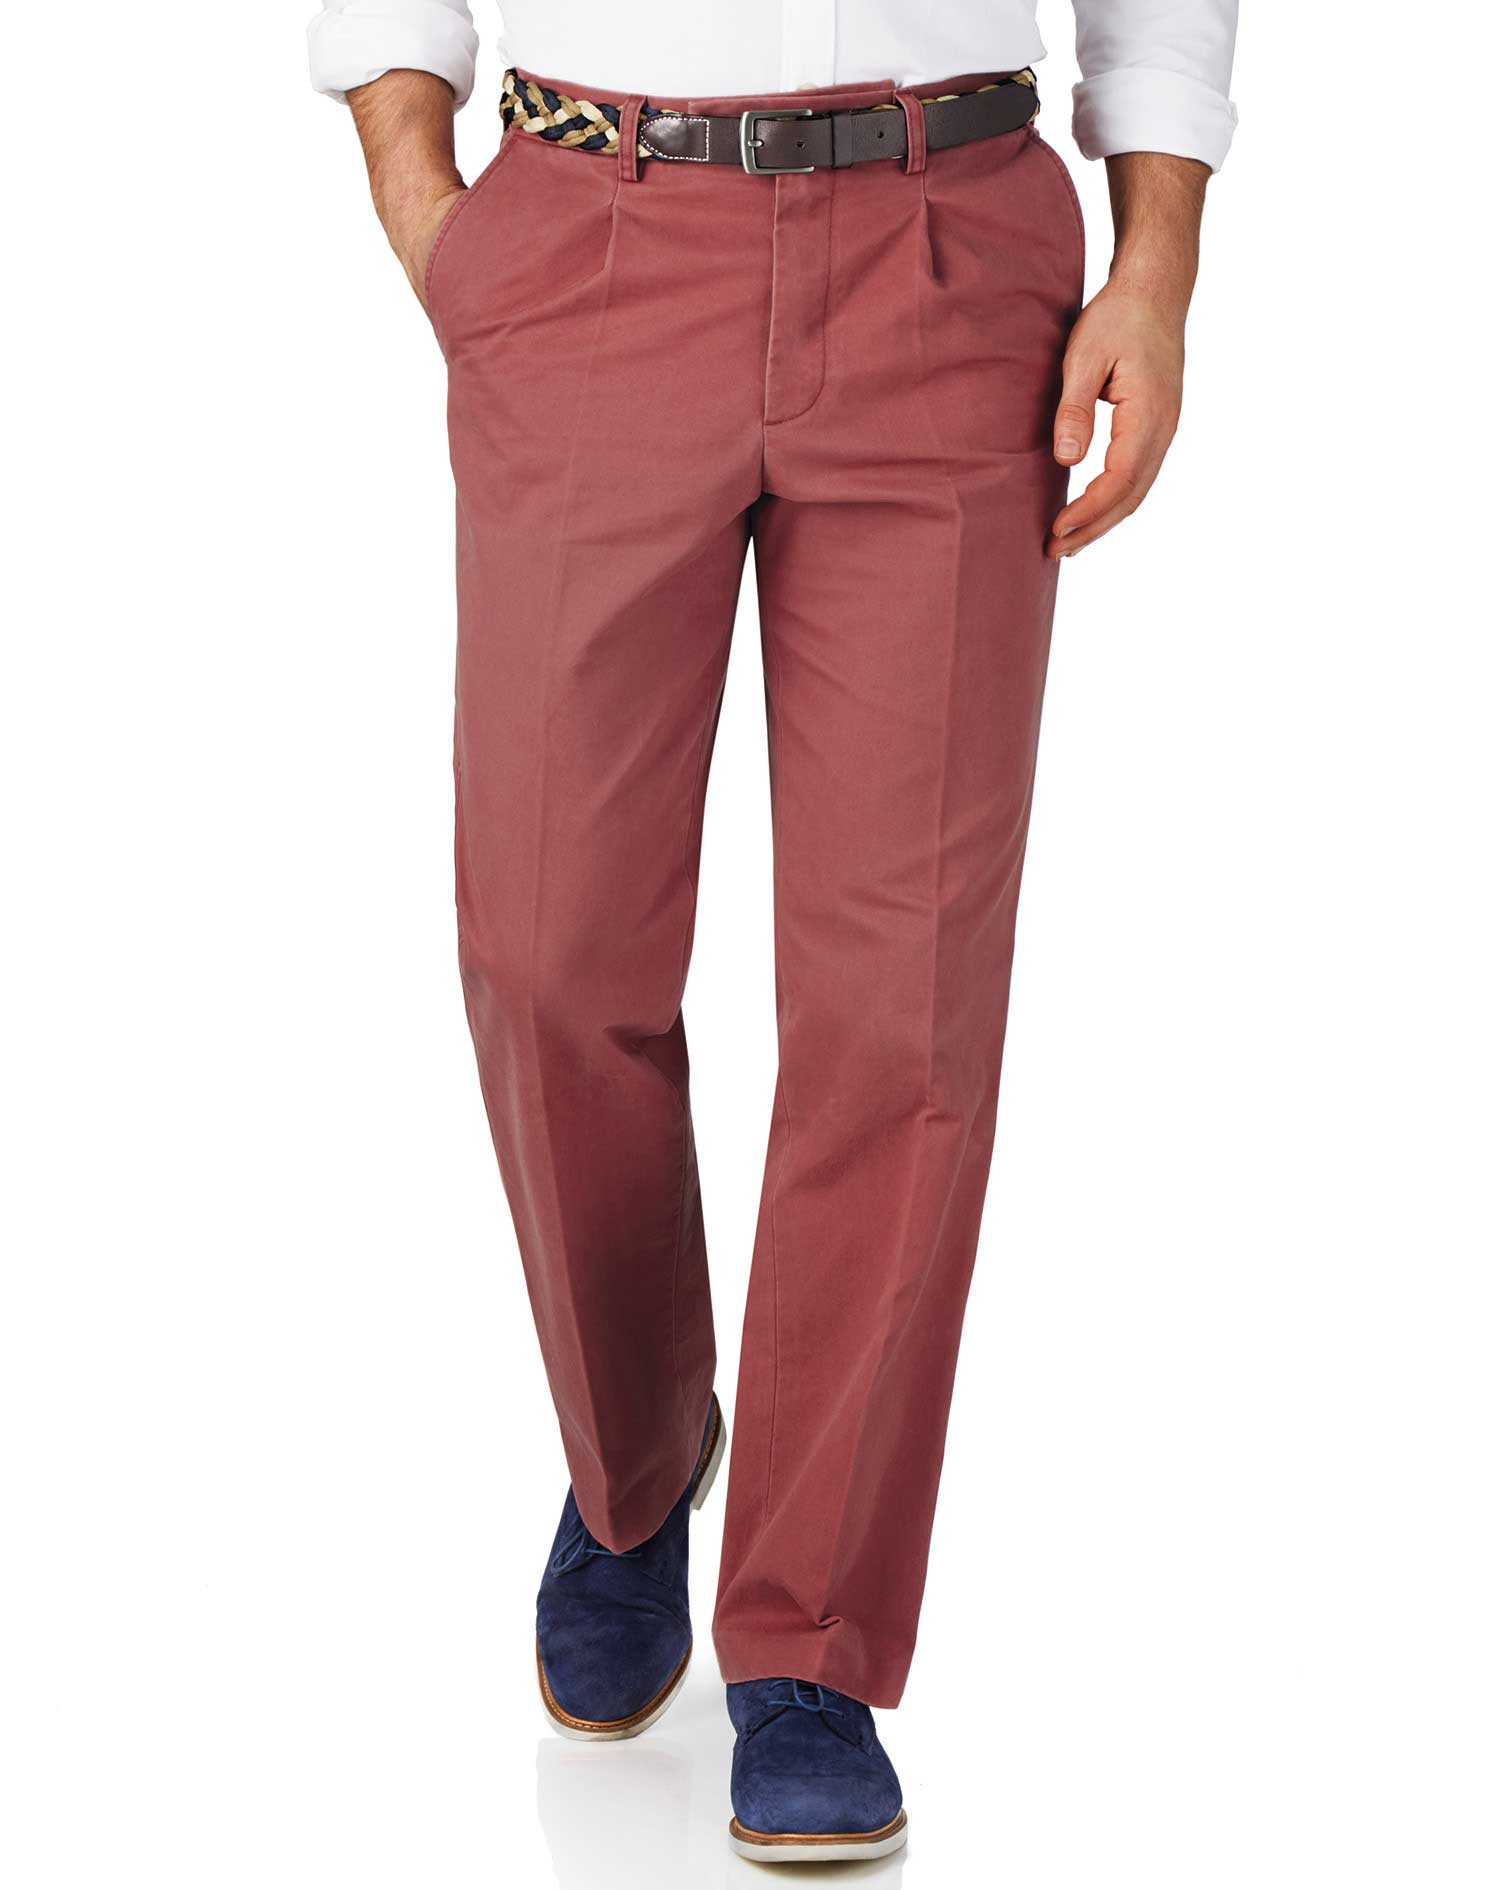 Light Red Classic Fit Single Pleat Weekend Cotton Chino Trousers Size W32 L38 by Charles Tyrwhitt